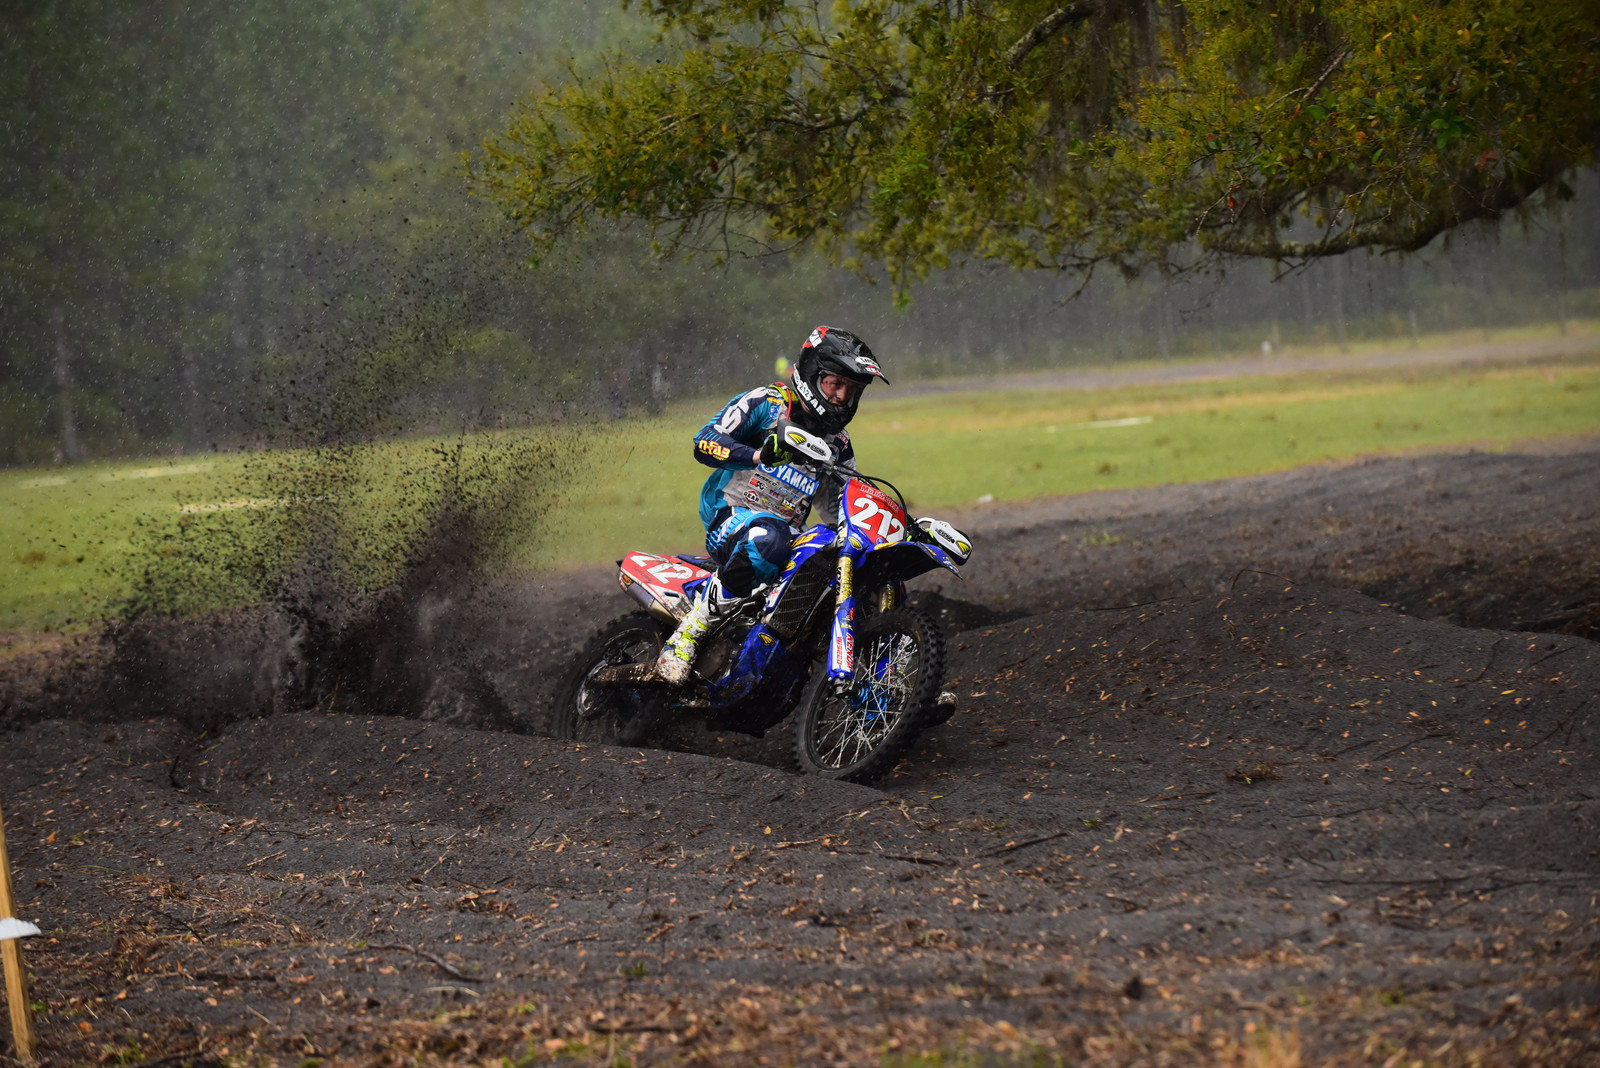 Ricky Russell - Wild Boar GNCC - Motocross Pictures - Vital MX